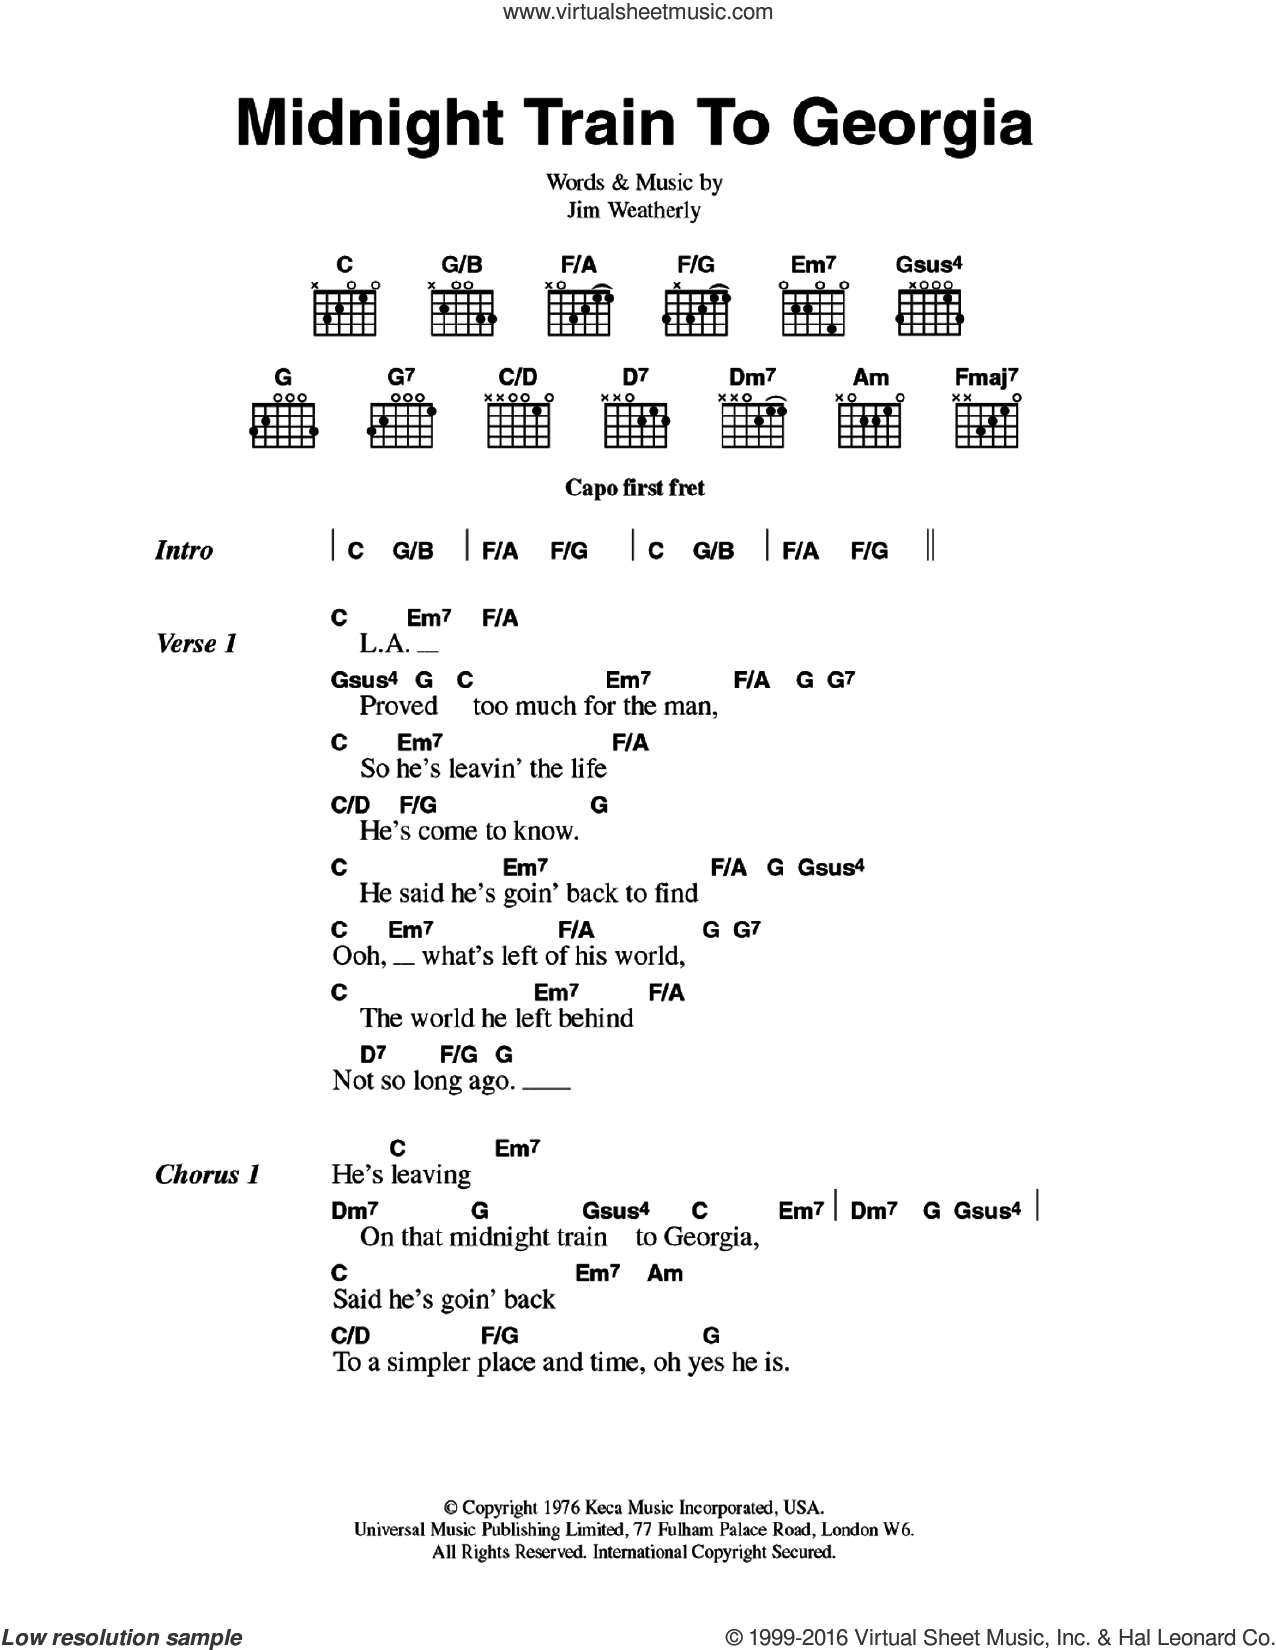 Midnight Train To Georgia sheet music for guitar (chords) by Gladys Knight & The Pips and Jim Weatherly, intermediate skill level